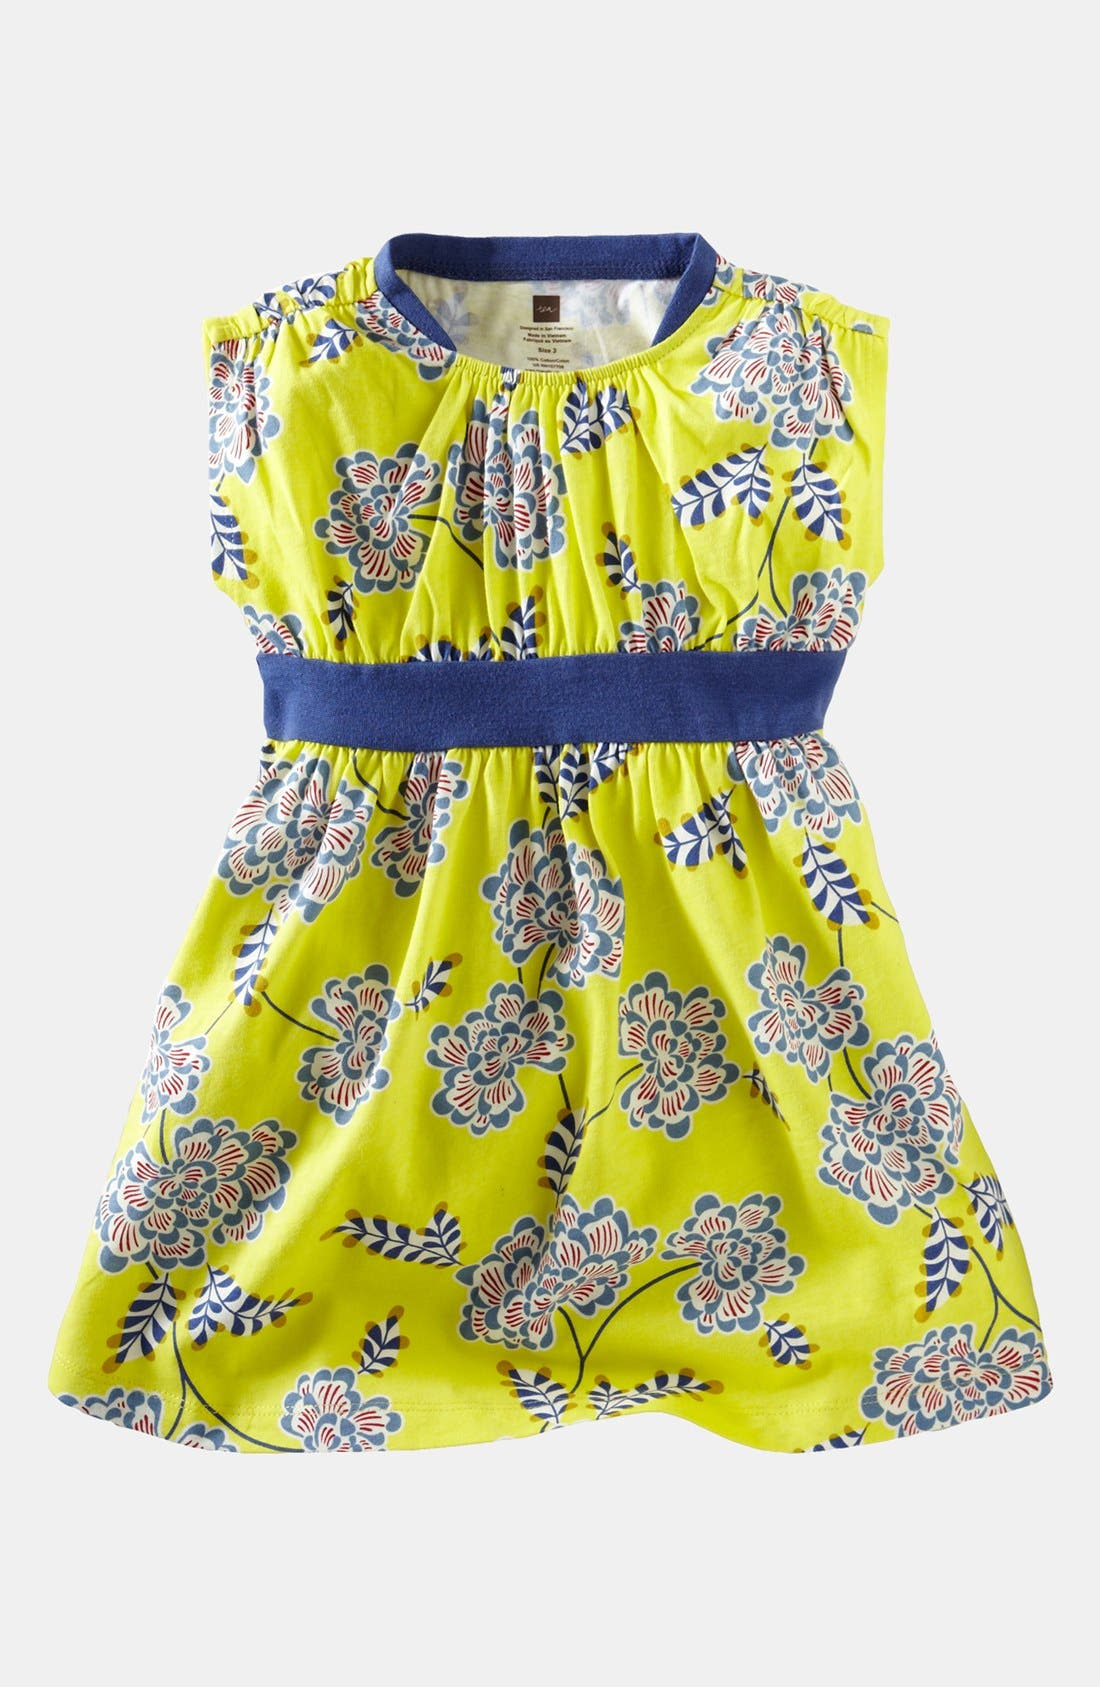 Alternate Image 1 Selected - Tea Collection 'Chrysanthemum' Banded Dress (Toddler Girls)